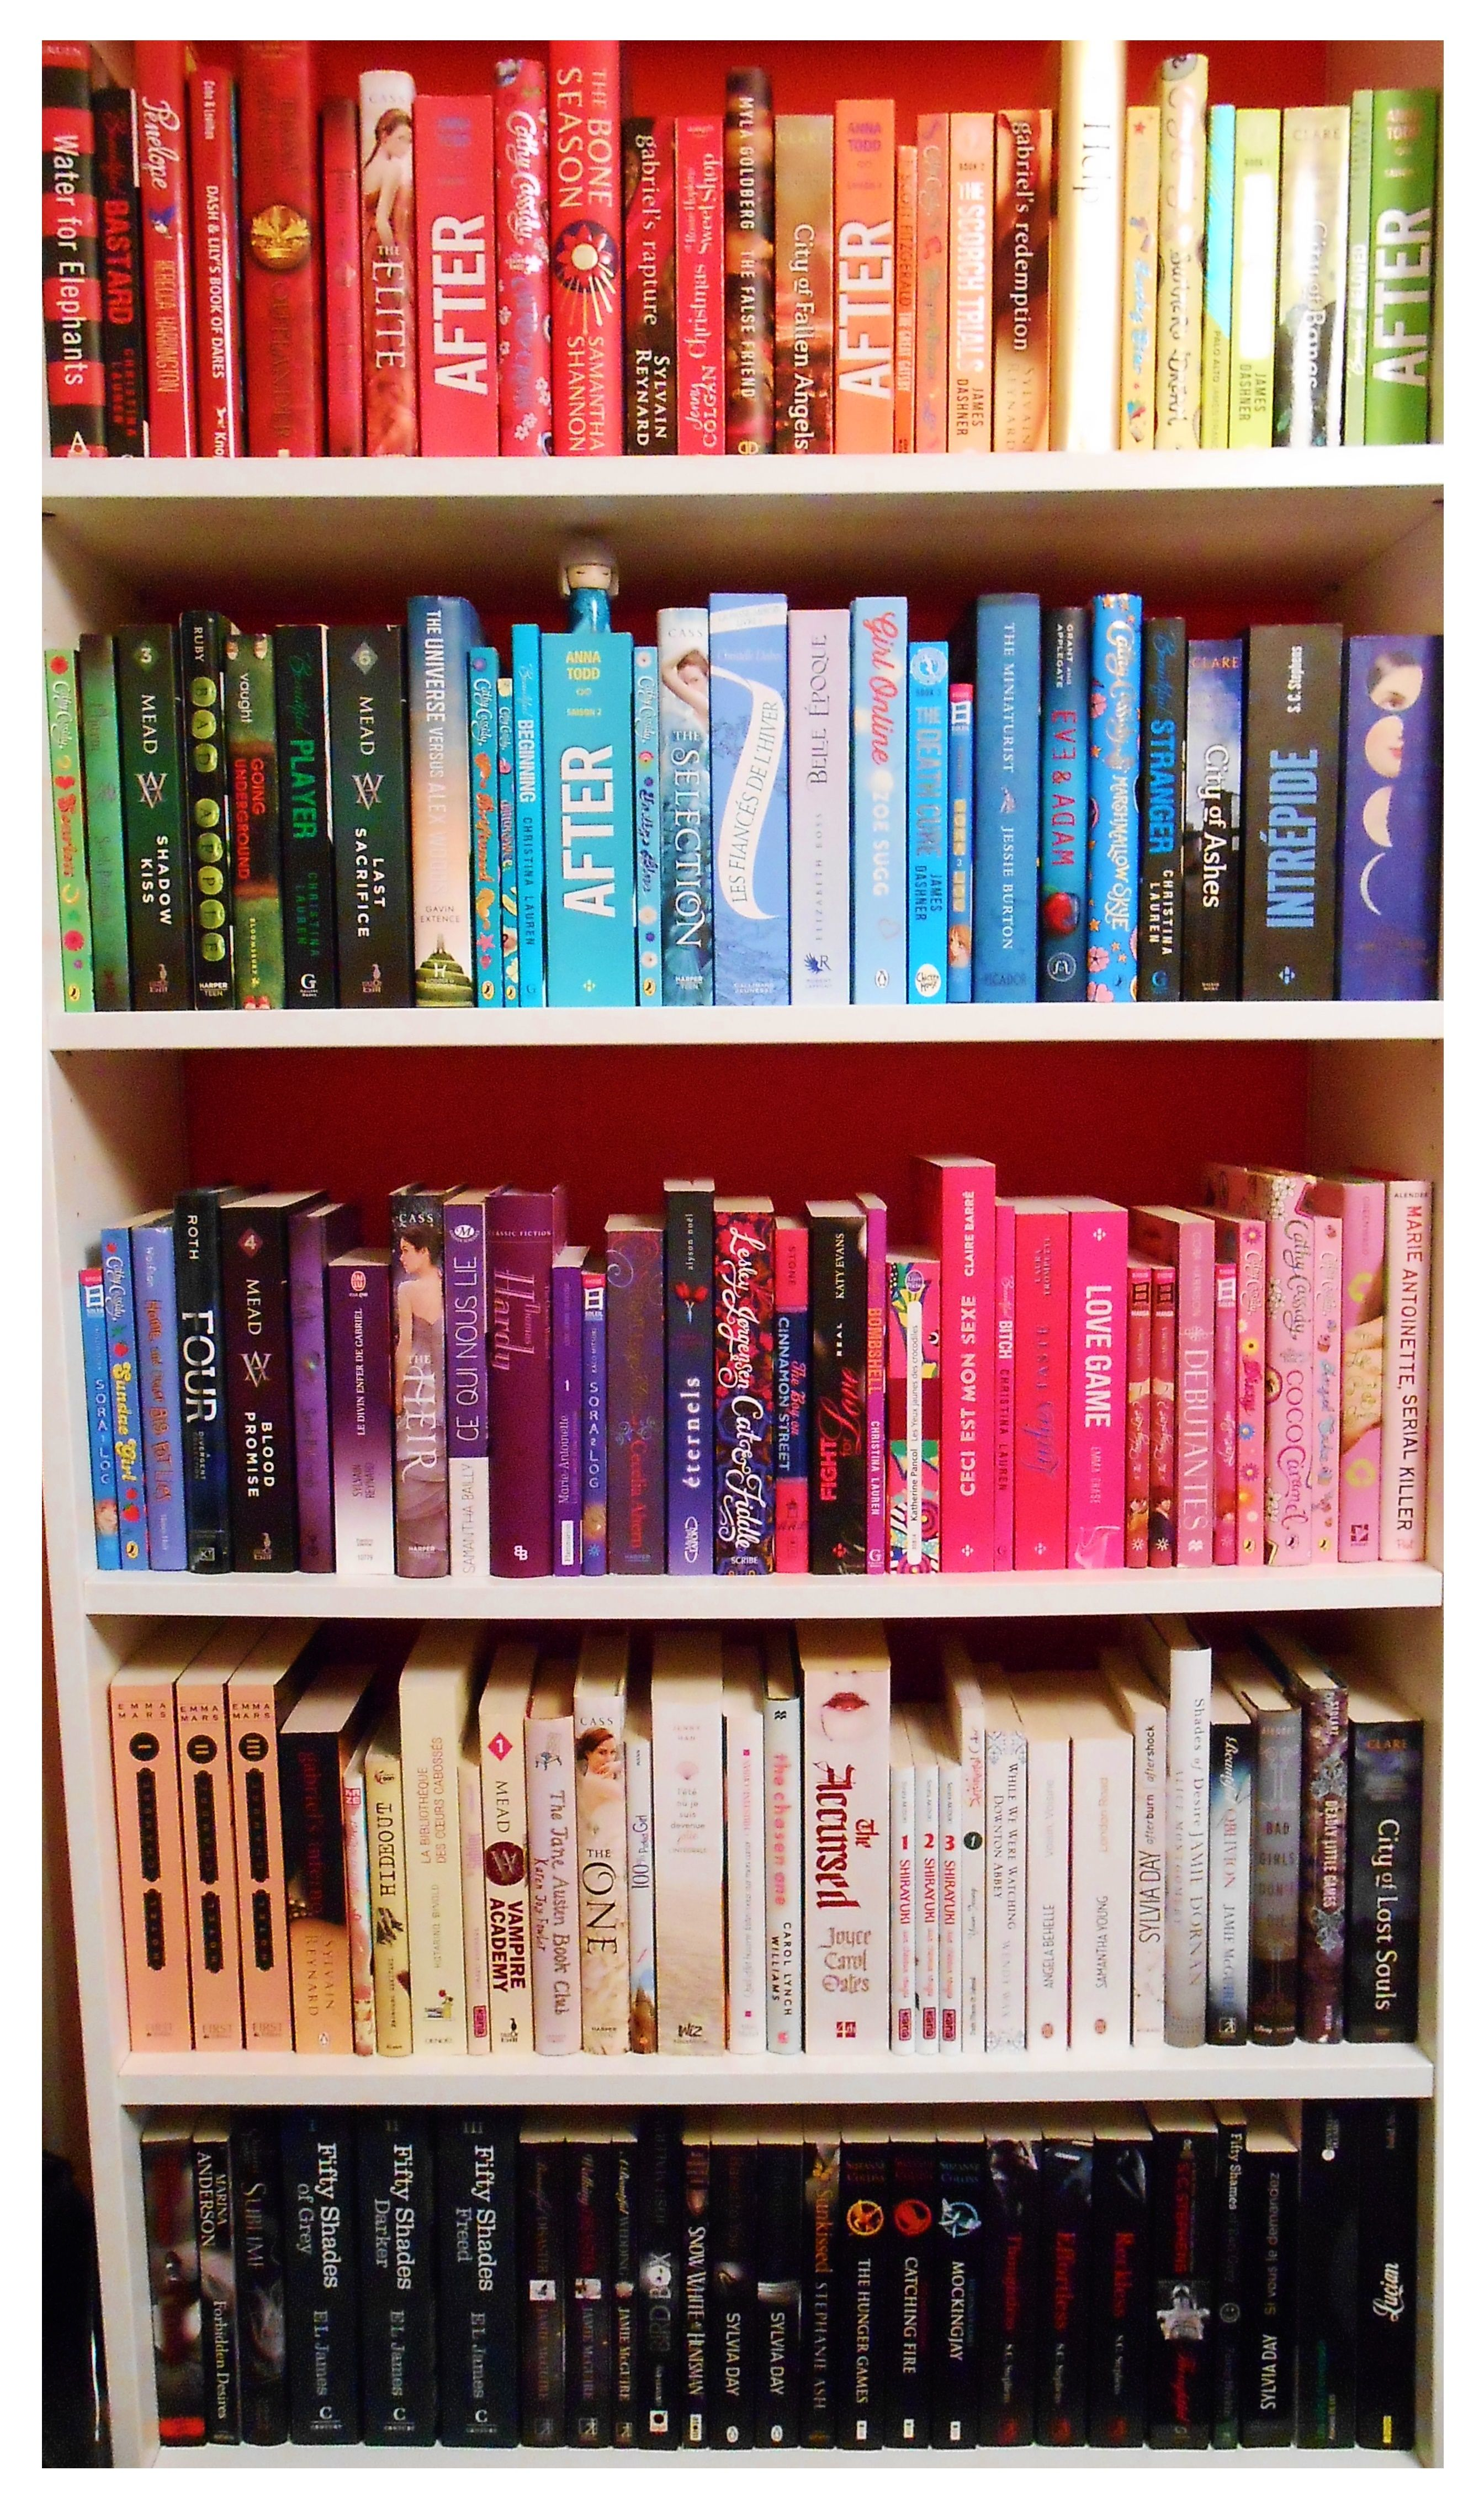 Co colour coordinated bookshelf - Colour Sorted Bookshelf Matching Funko Pop Figurines By Grace S Library These Are Some Great Books Too Book Pinterest Livres Pop Figurine